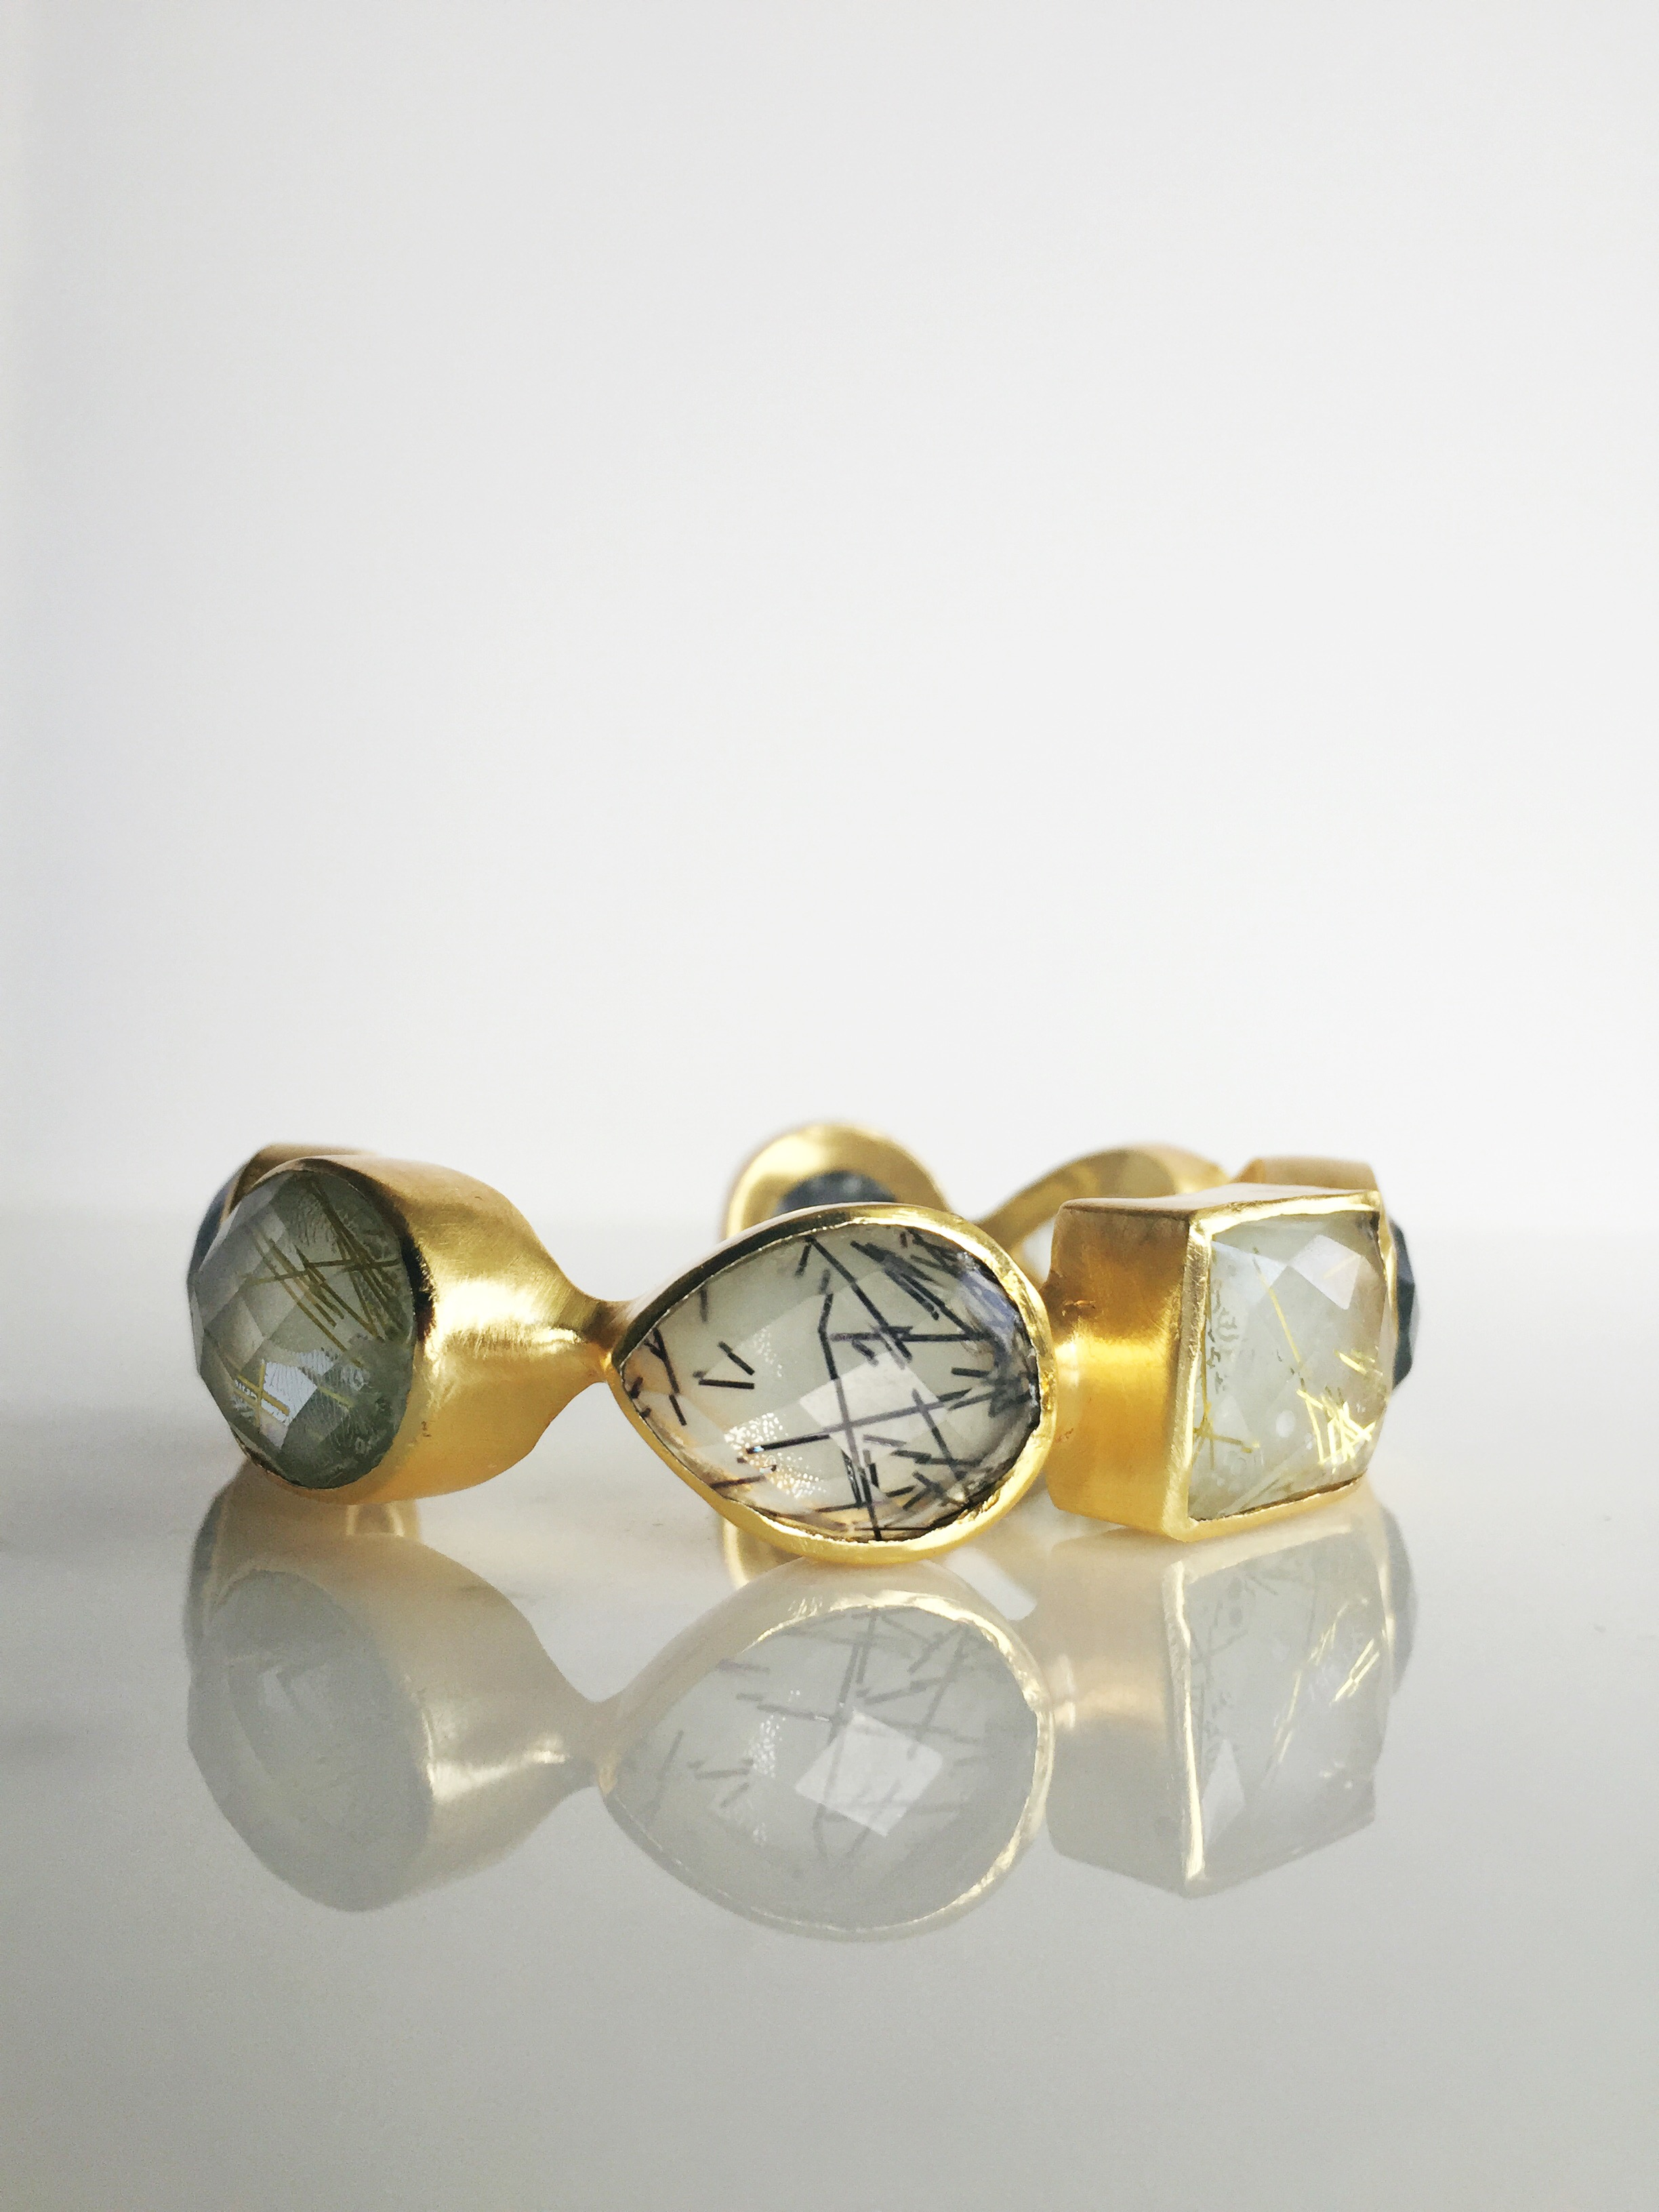 Ruitilated quartz + gold